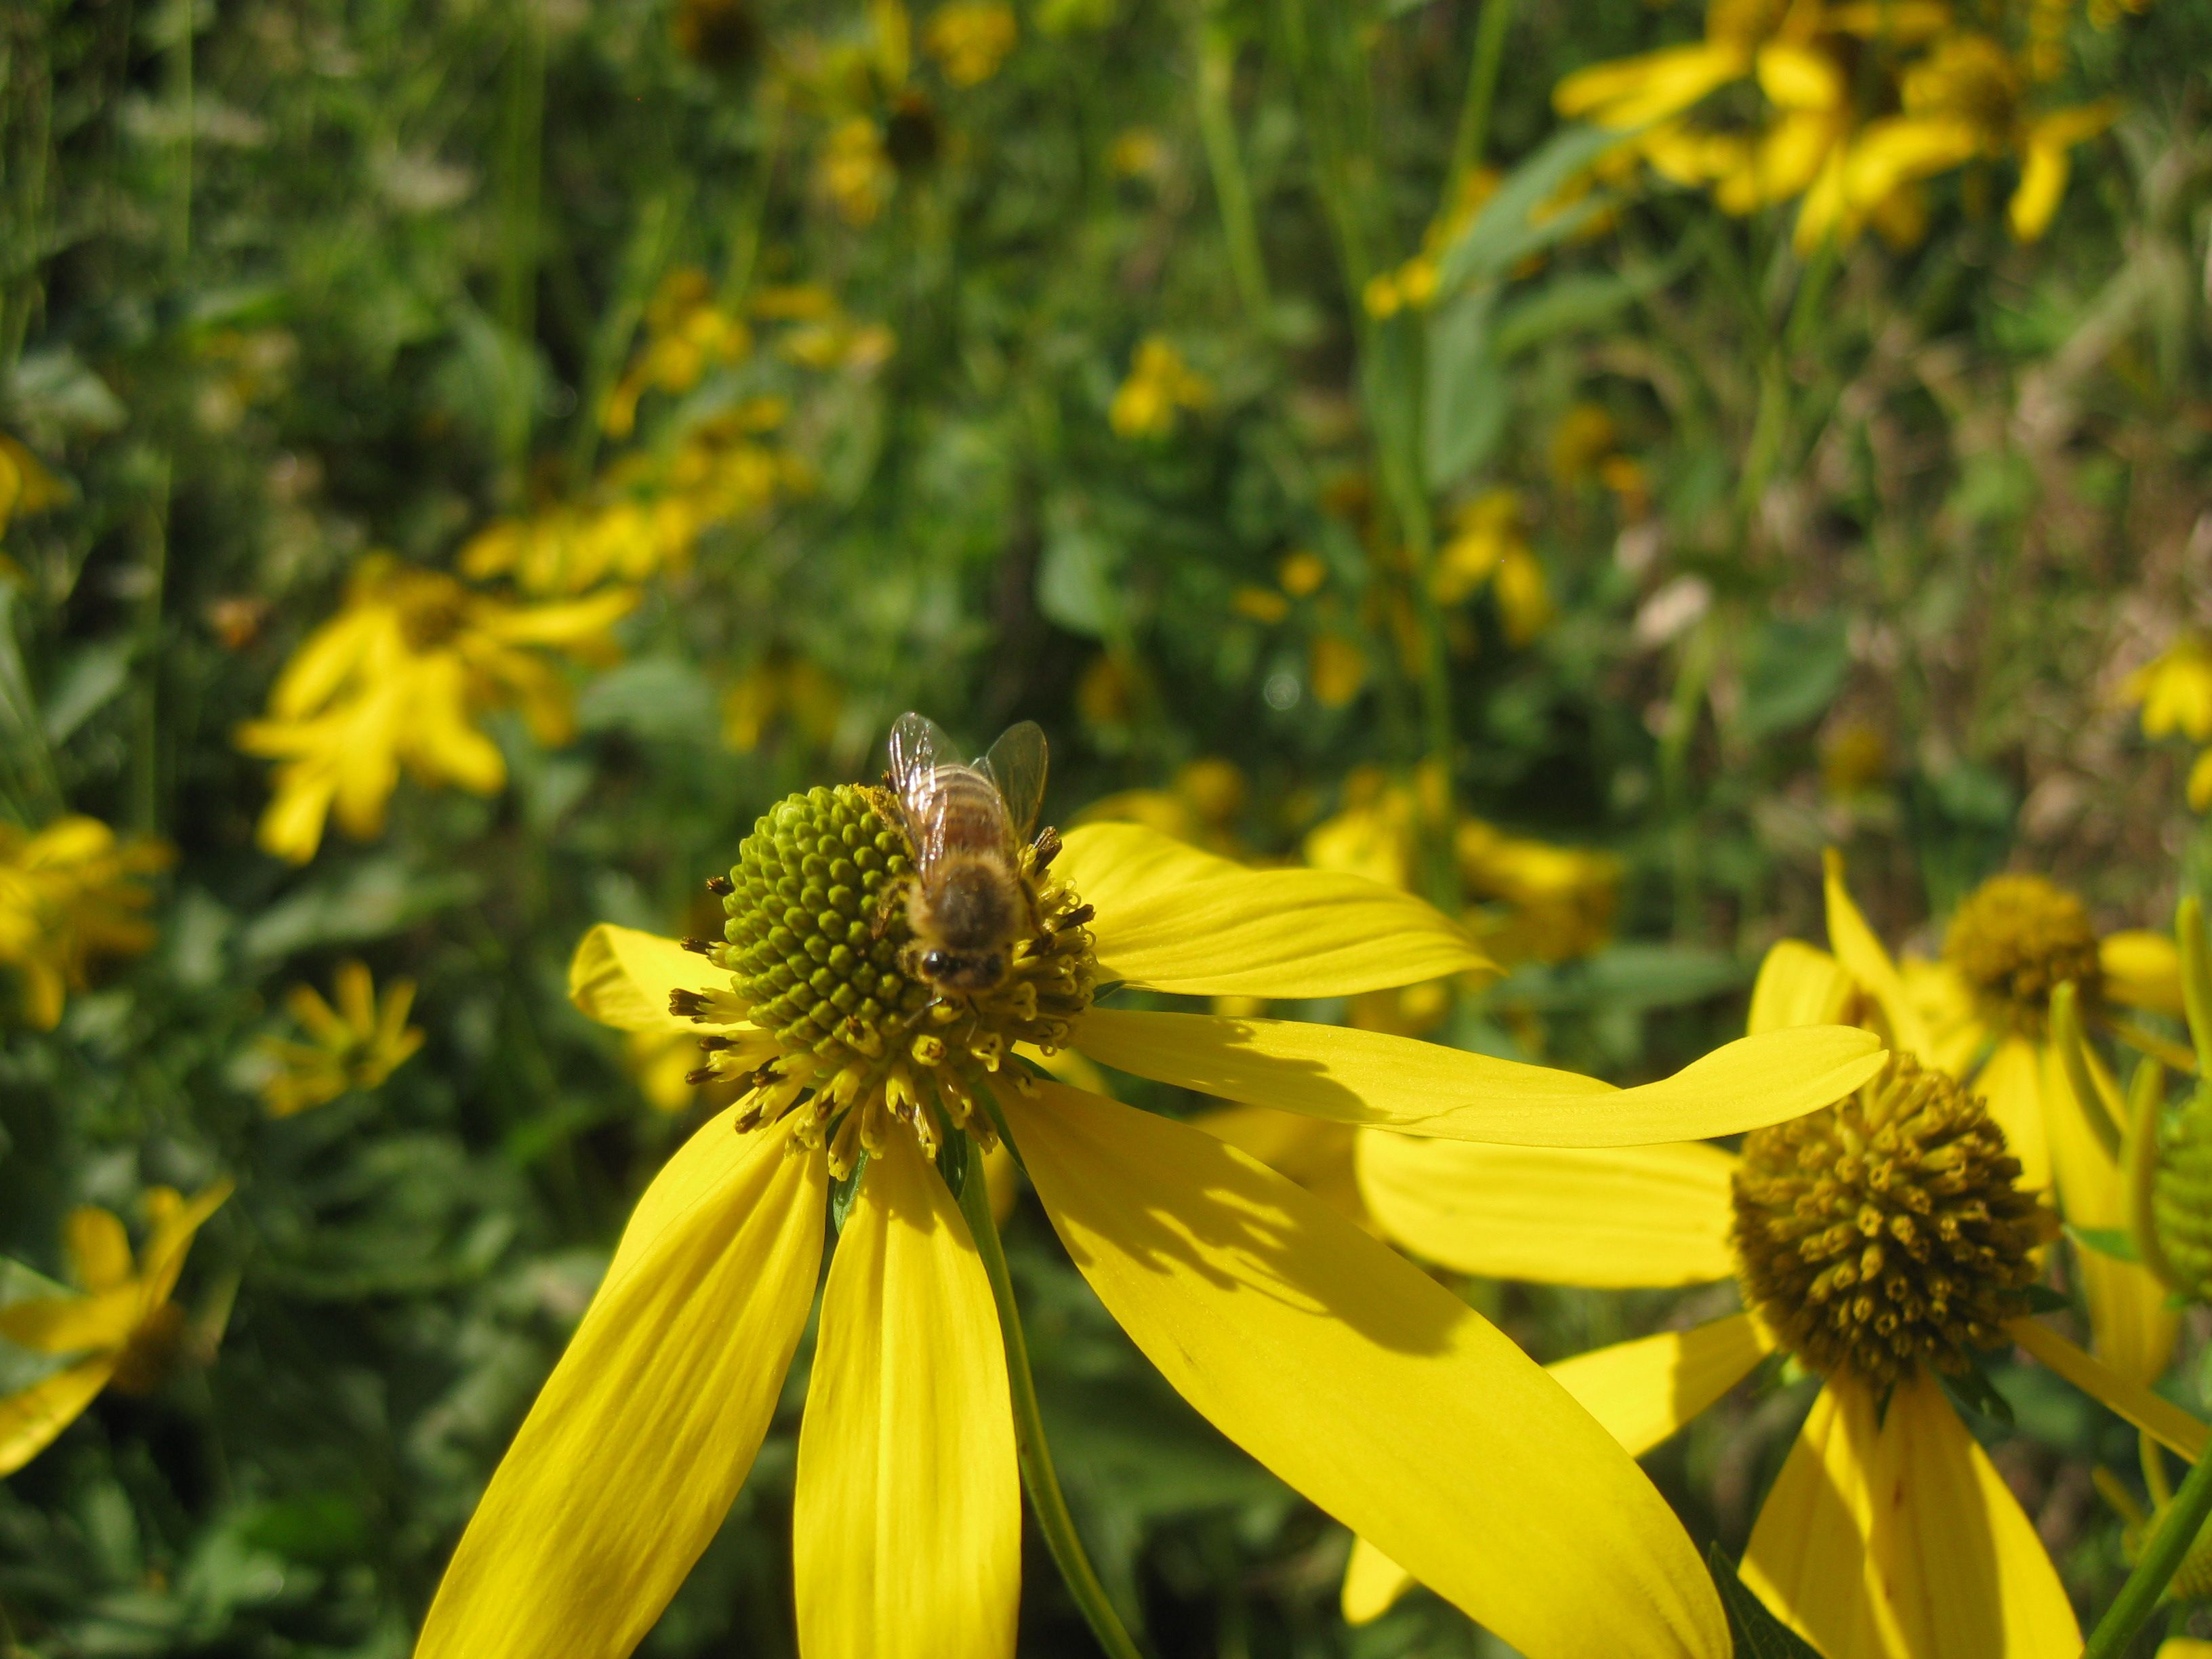 Flowers that like sun and moist soil -  Facw Showy Flowering Perennial Yellow Petals With Central Green Cones July September Bloom Grows In Moist Soils Full Sun To Partial Shade Tall